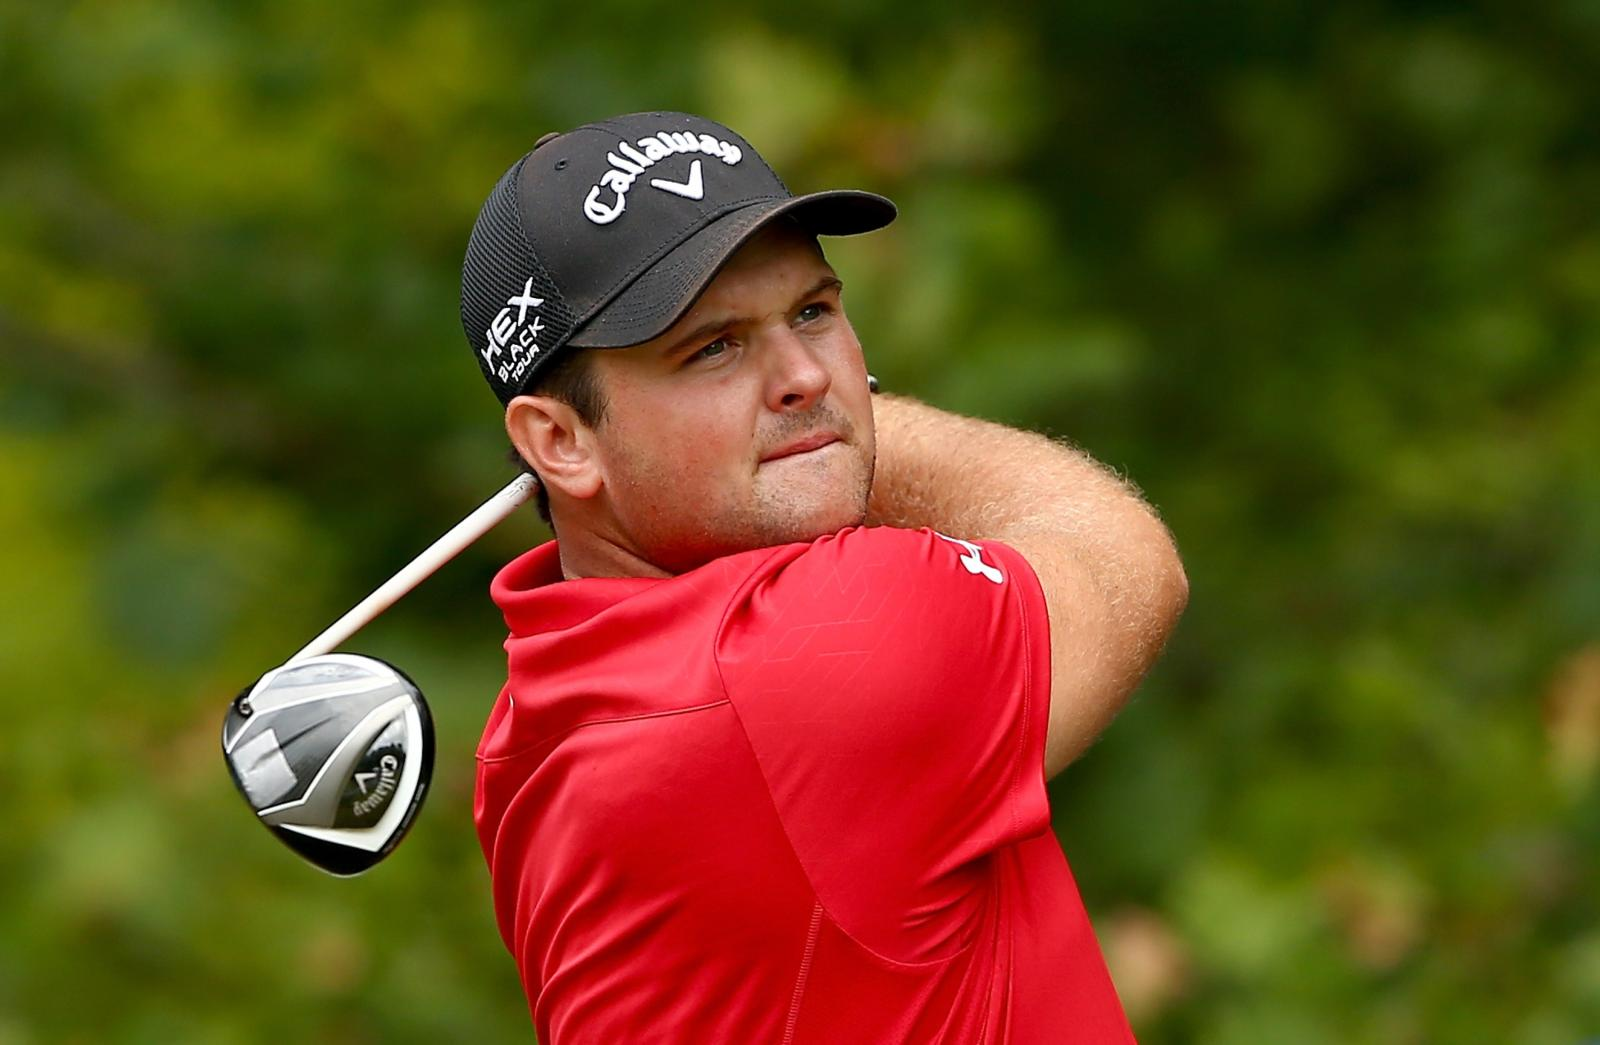 Nike Driver 2014 >> Golfer Patrick Reed gets angry and calls himself a [homophobic slur] - Metro Weekly